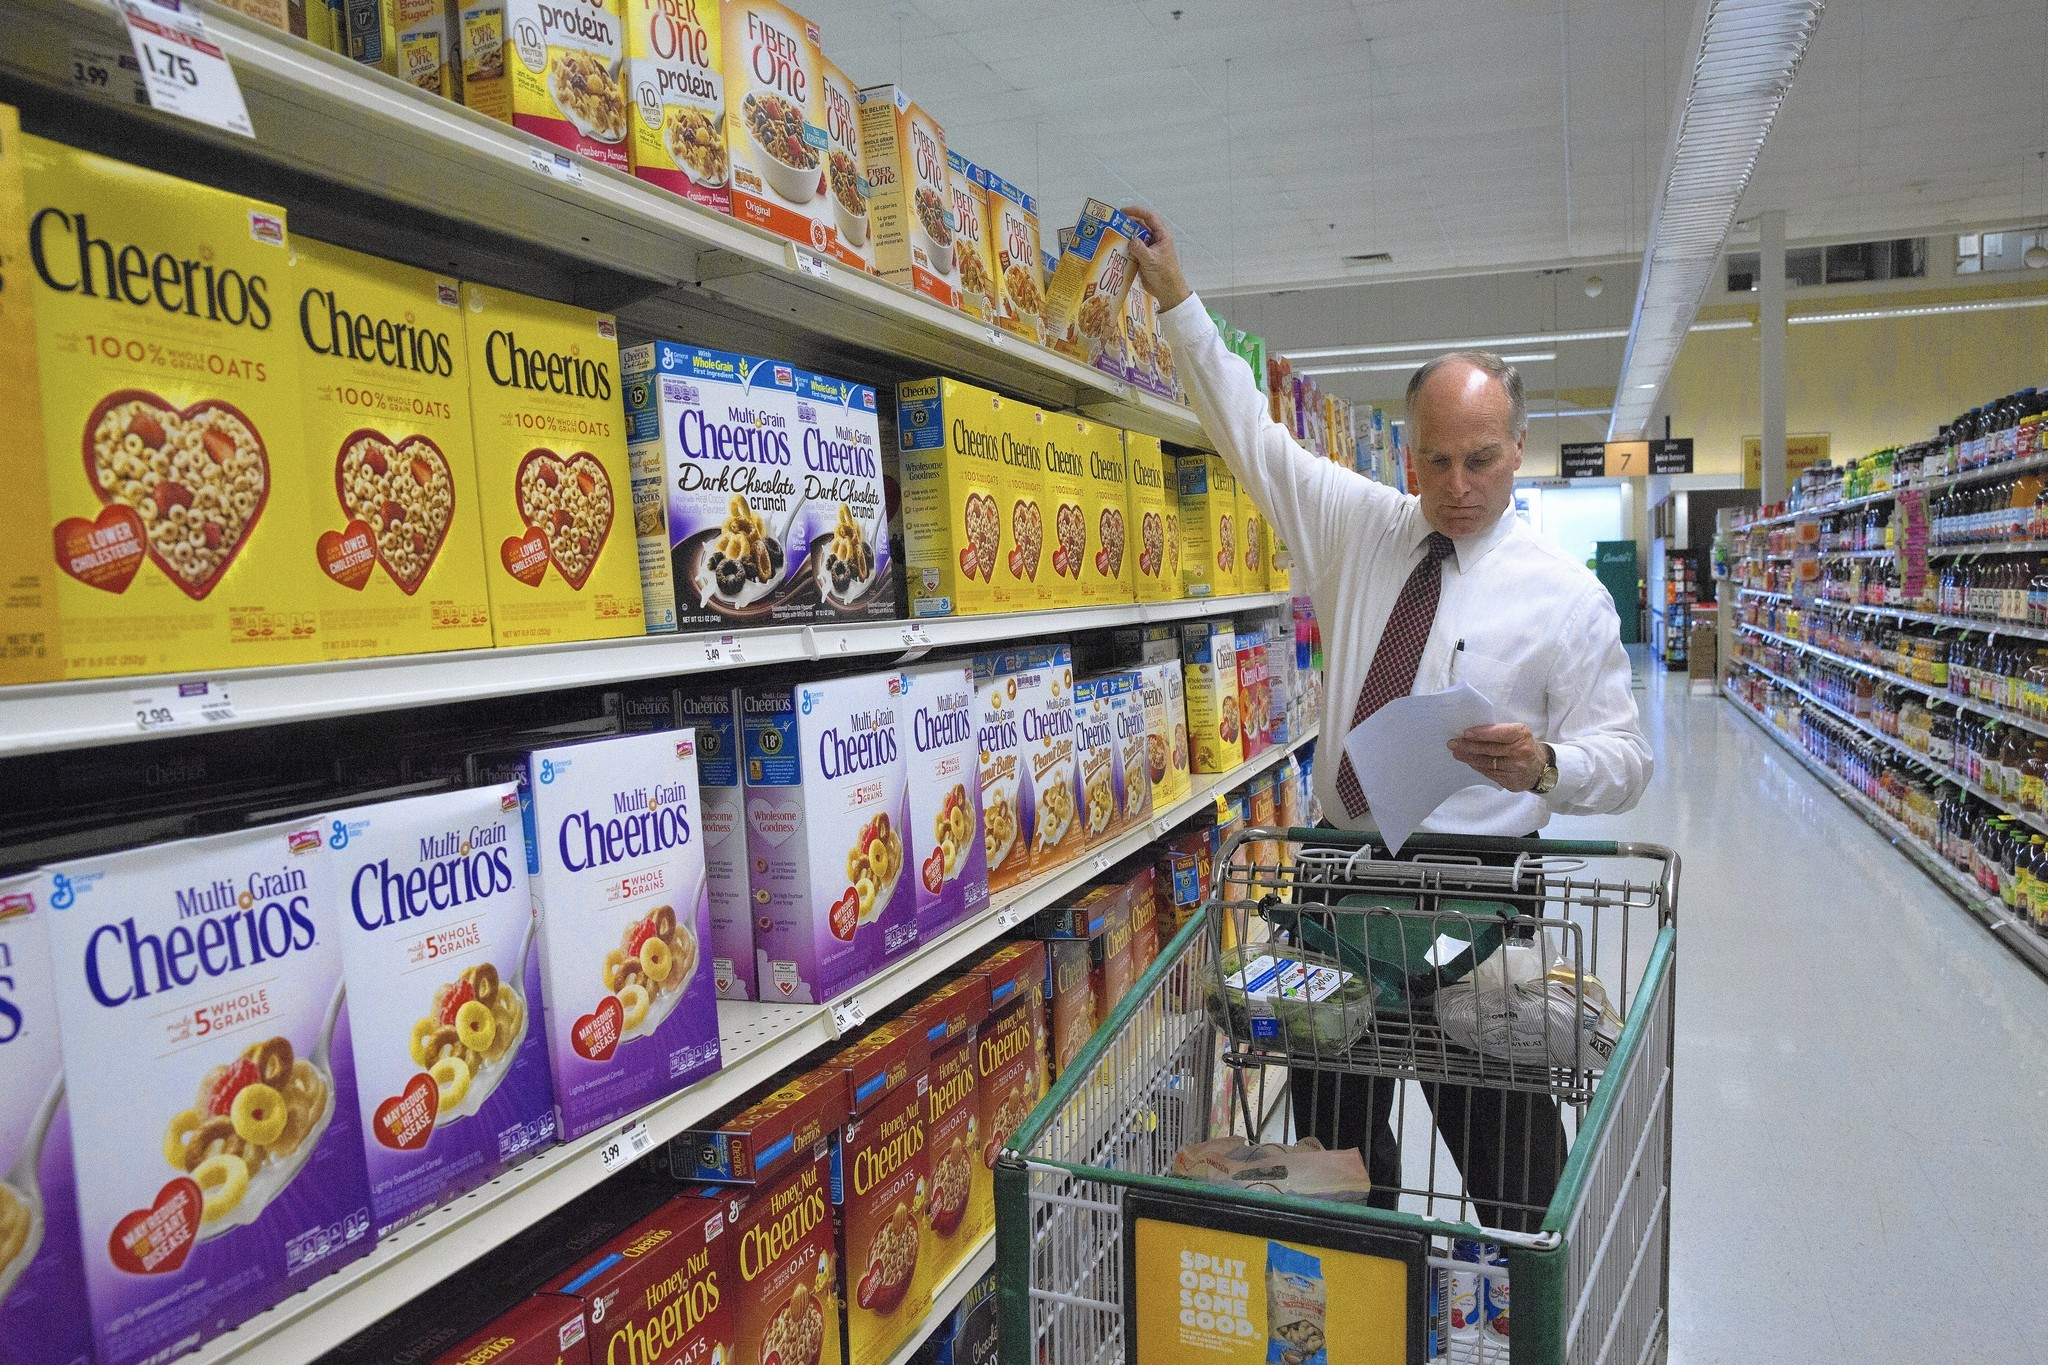 UnitedHealthcare offers savings for shopping healthy at the grocery